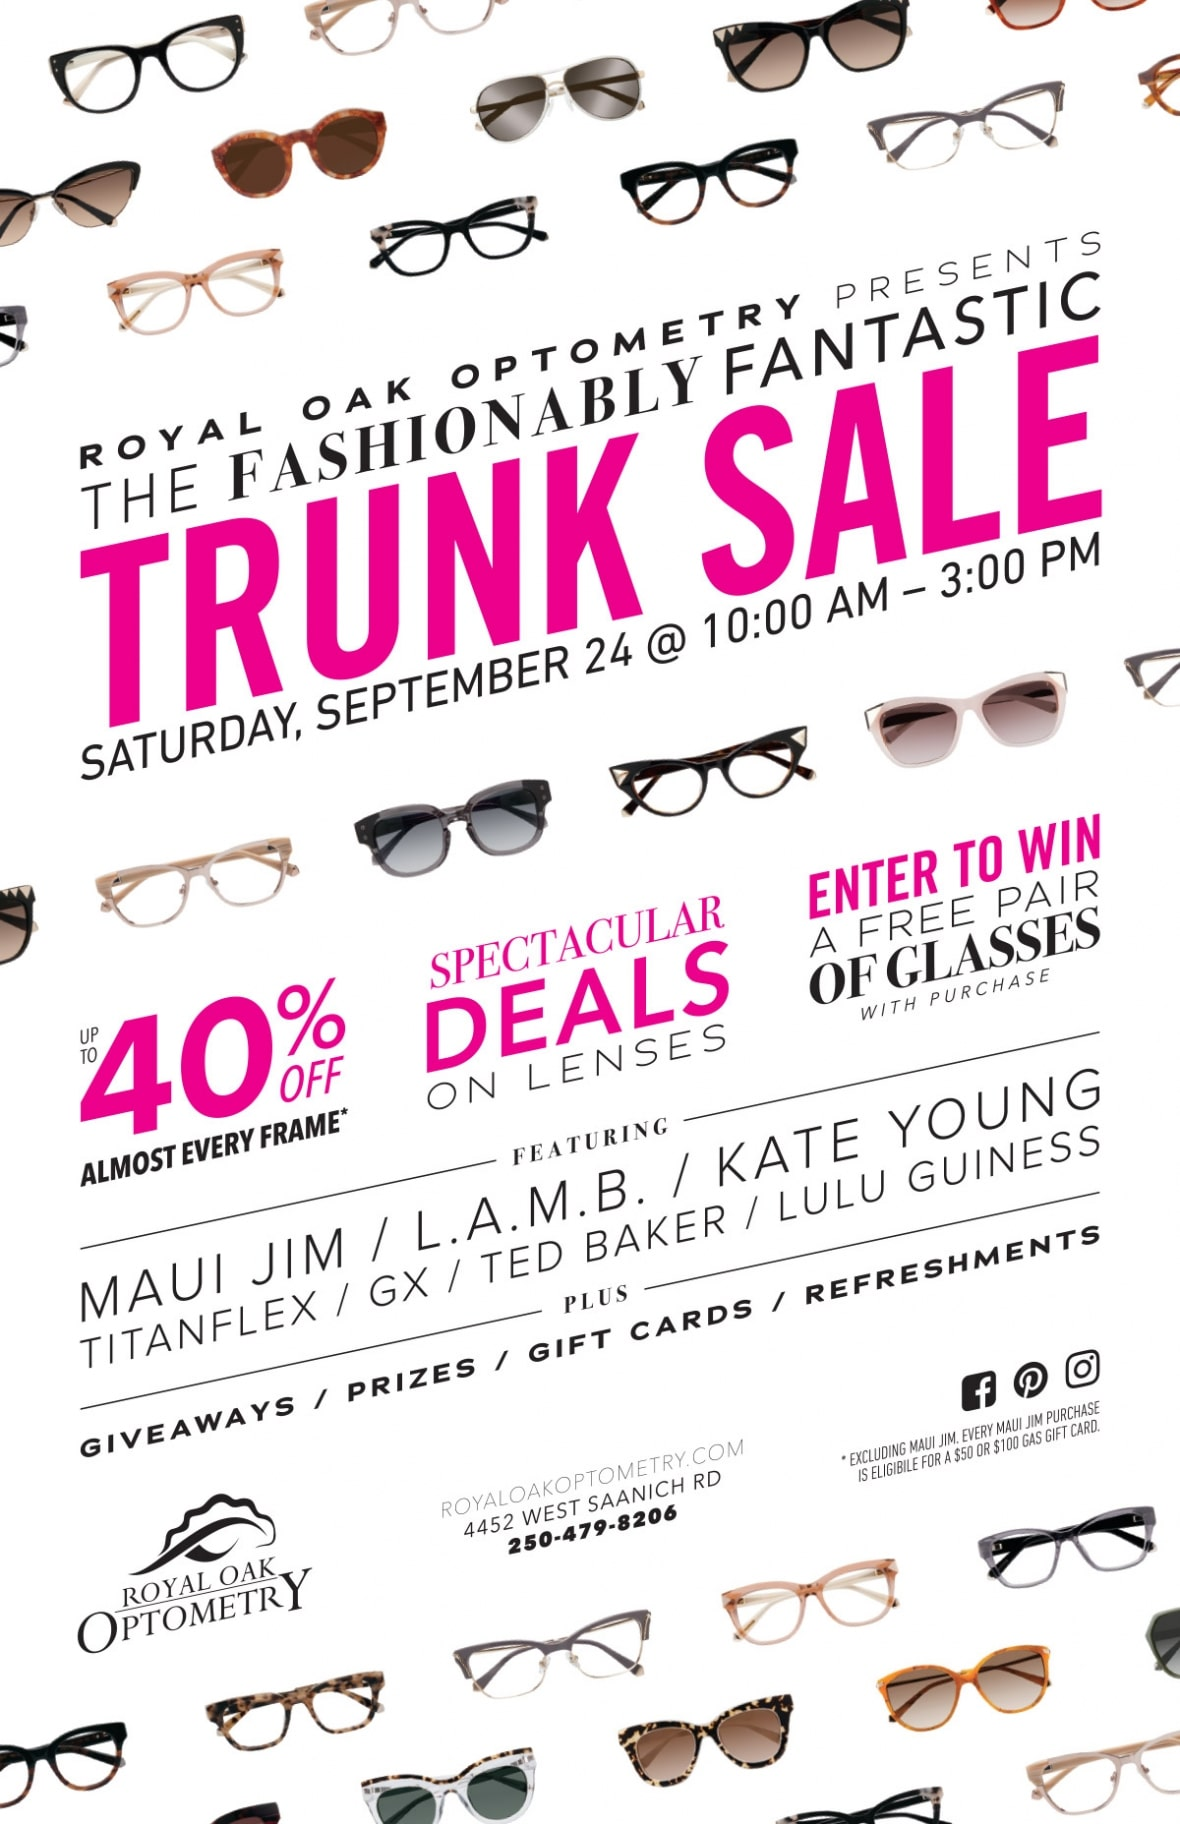 Royal Oak Optometry trunk sale poster